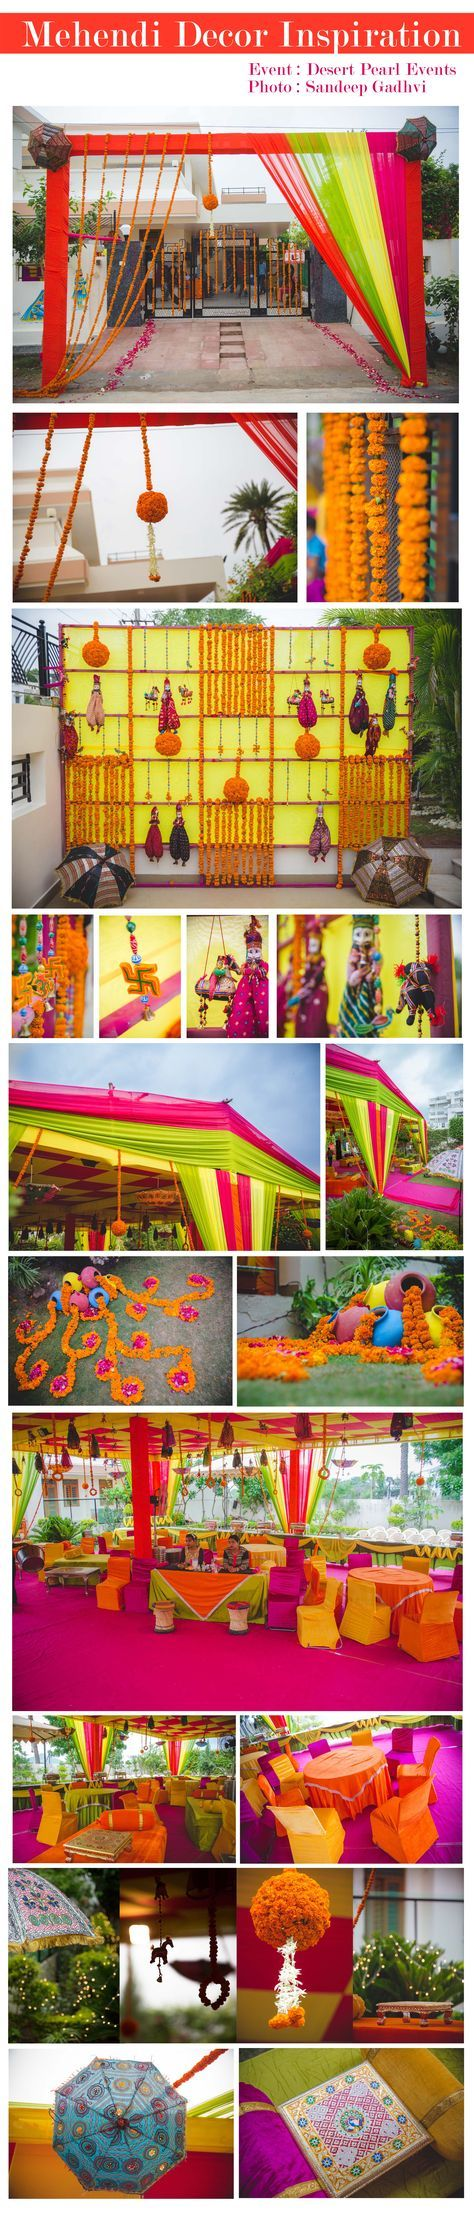 Mehendi Decoration at Udaipur,Rajasthan wedding. All elements of decoration was in traditional rajasthani theme having vibrant colors and props like puppet, umbrella and handmade stuffed decors. Event managed by : Desert Pearl Entertainment